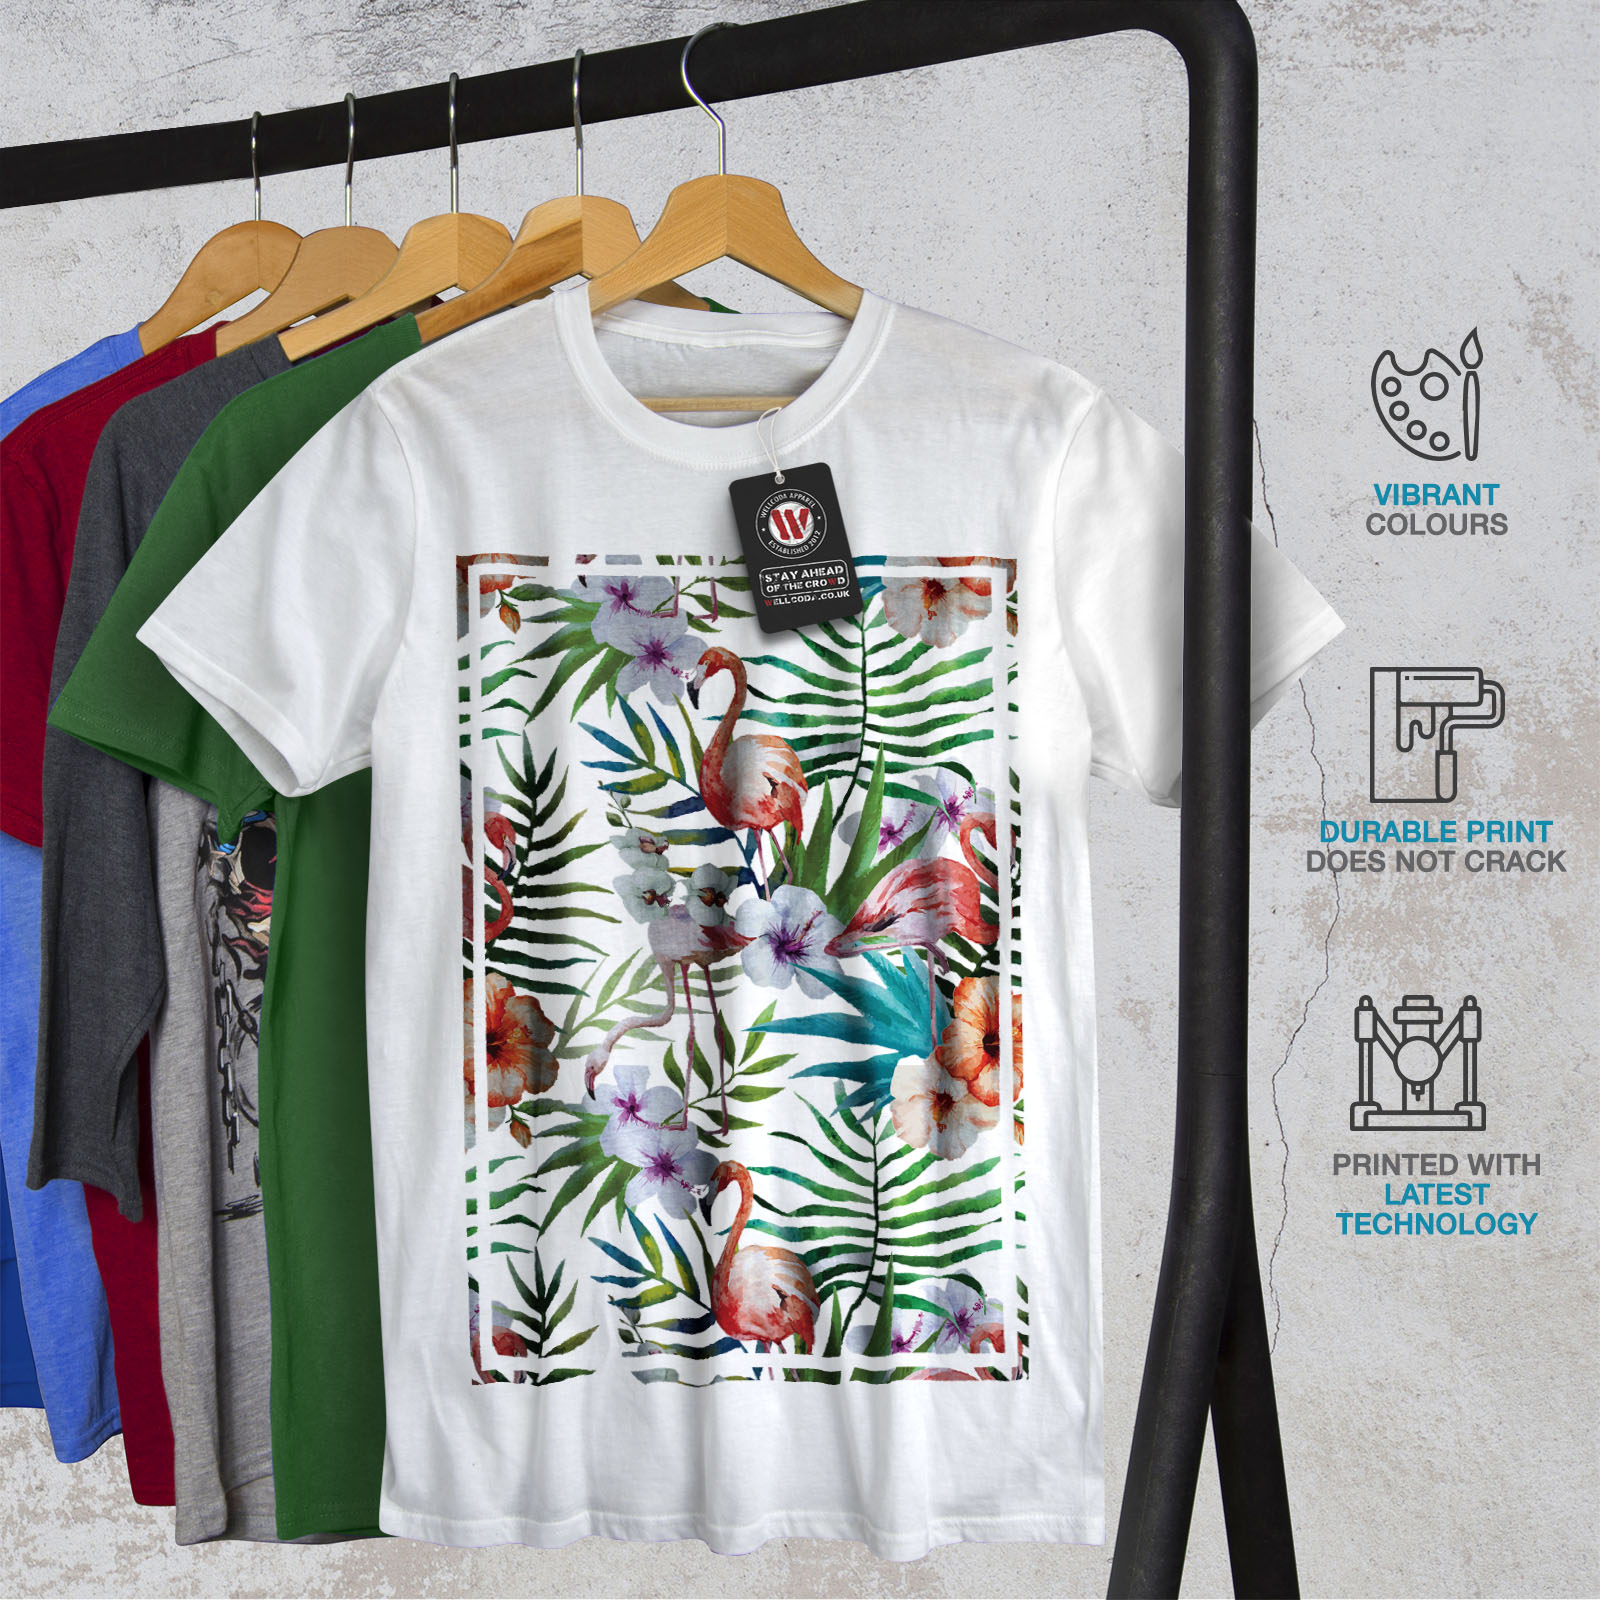 Wellcoda flamigo flower mens t shirt ornament graphic for Graphic design t shirts uk